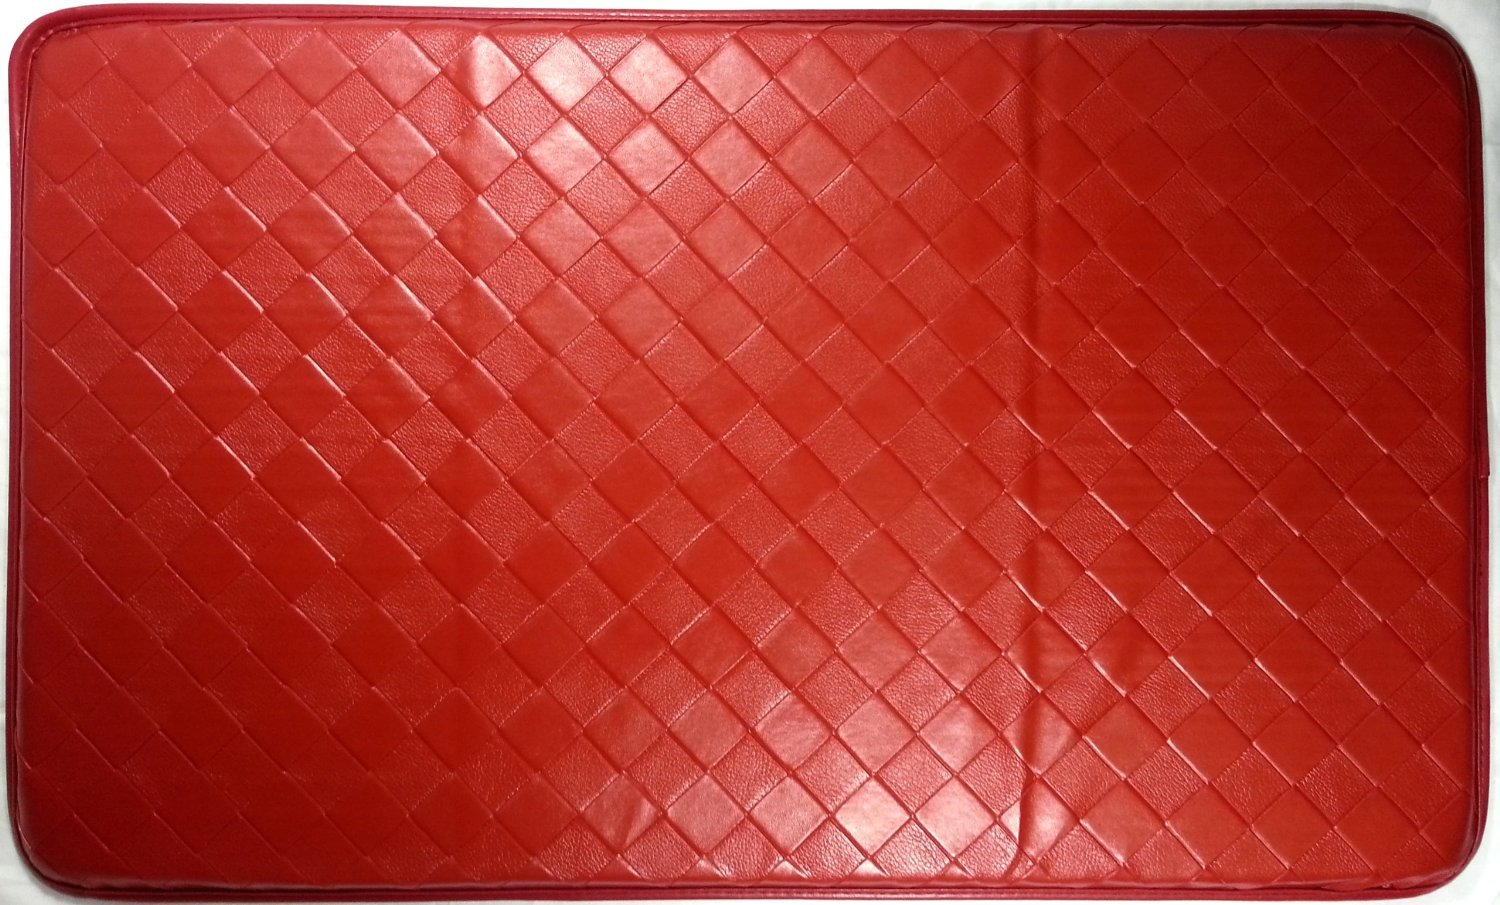 HomeElegance Chef Kitchen Comfort Feel At Ease Geometric Mat - Size: 18'' x 30'' - (Red)